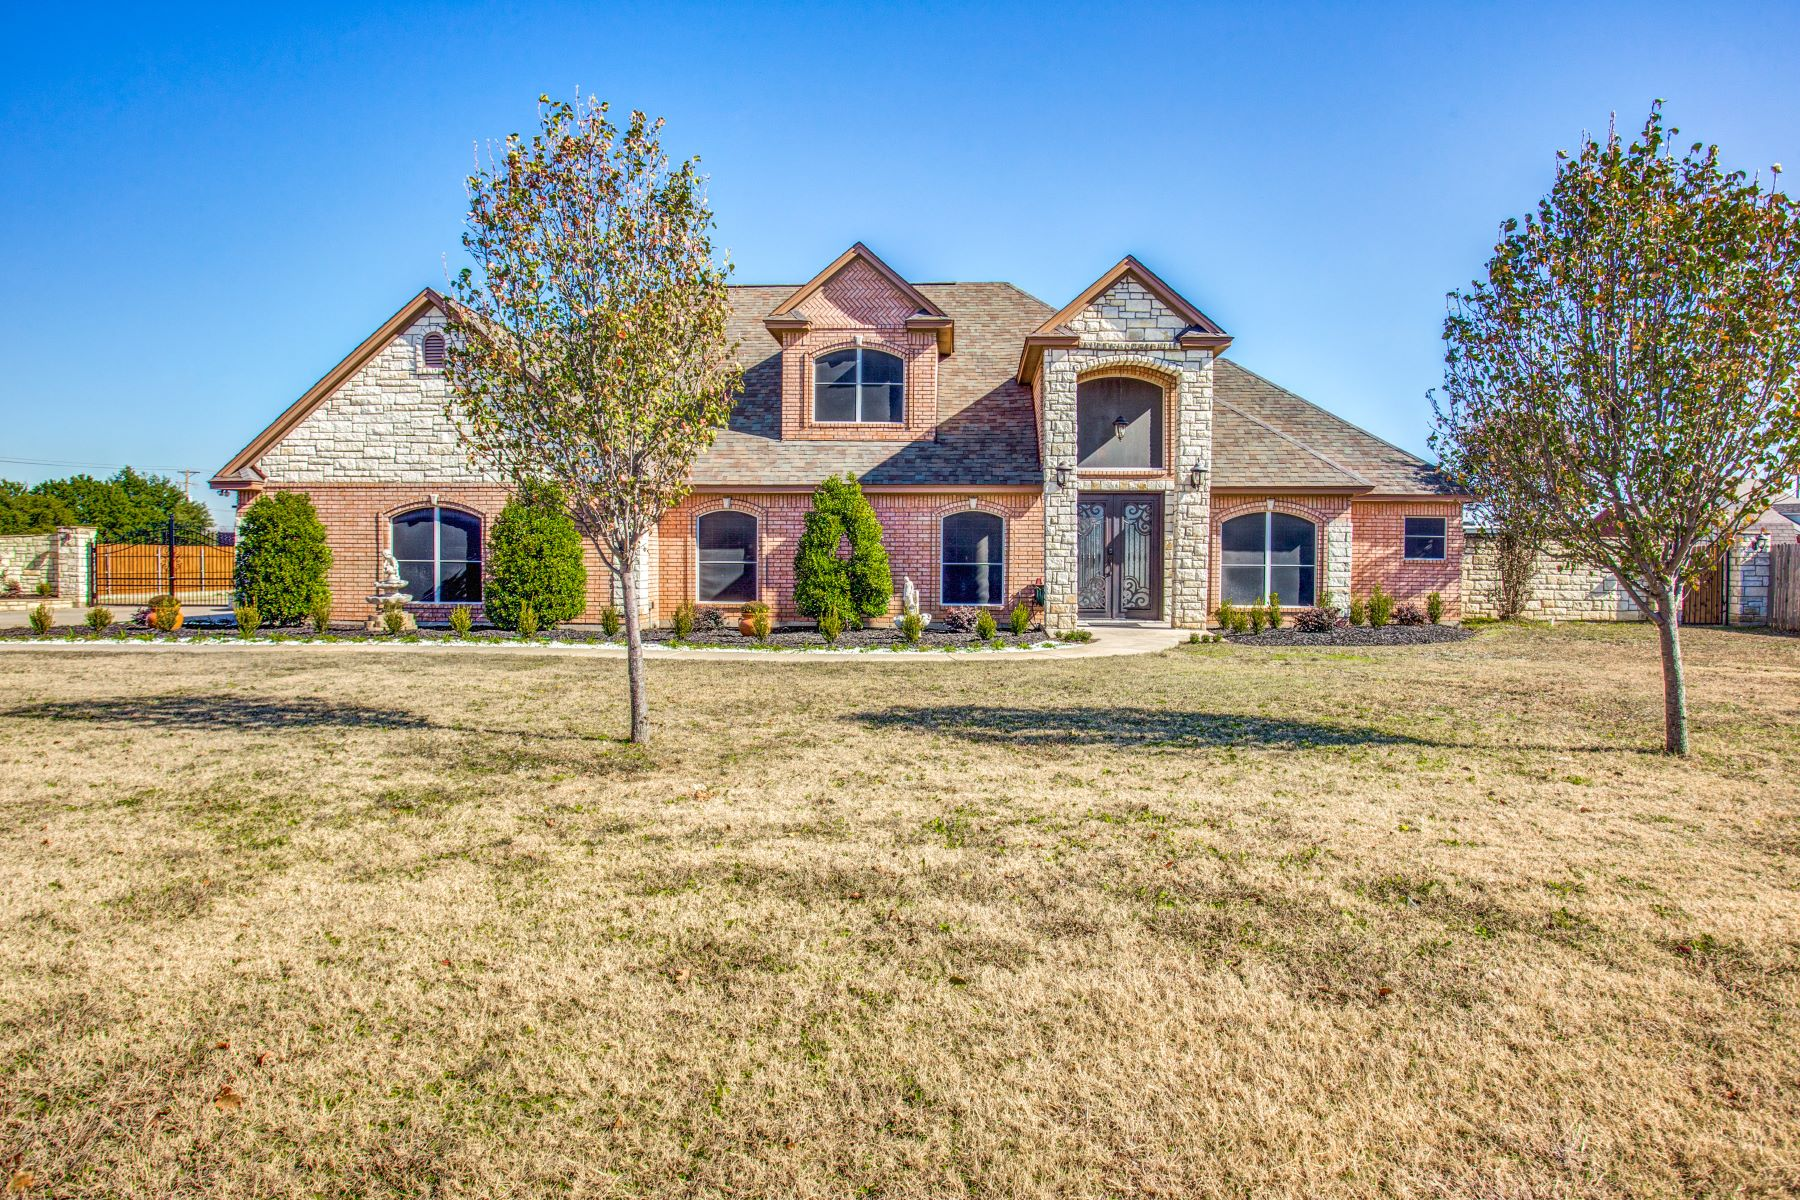 Single Family Homes für Verkauf beim Gorgeous 4 bedroom 3 bath home on almost an acre 836 London Lane, Crowley, Texas 76036 Vereinigte Staaten